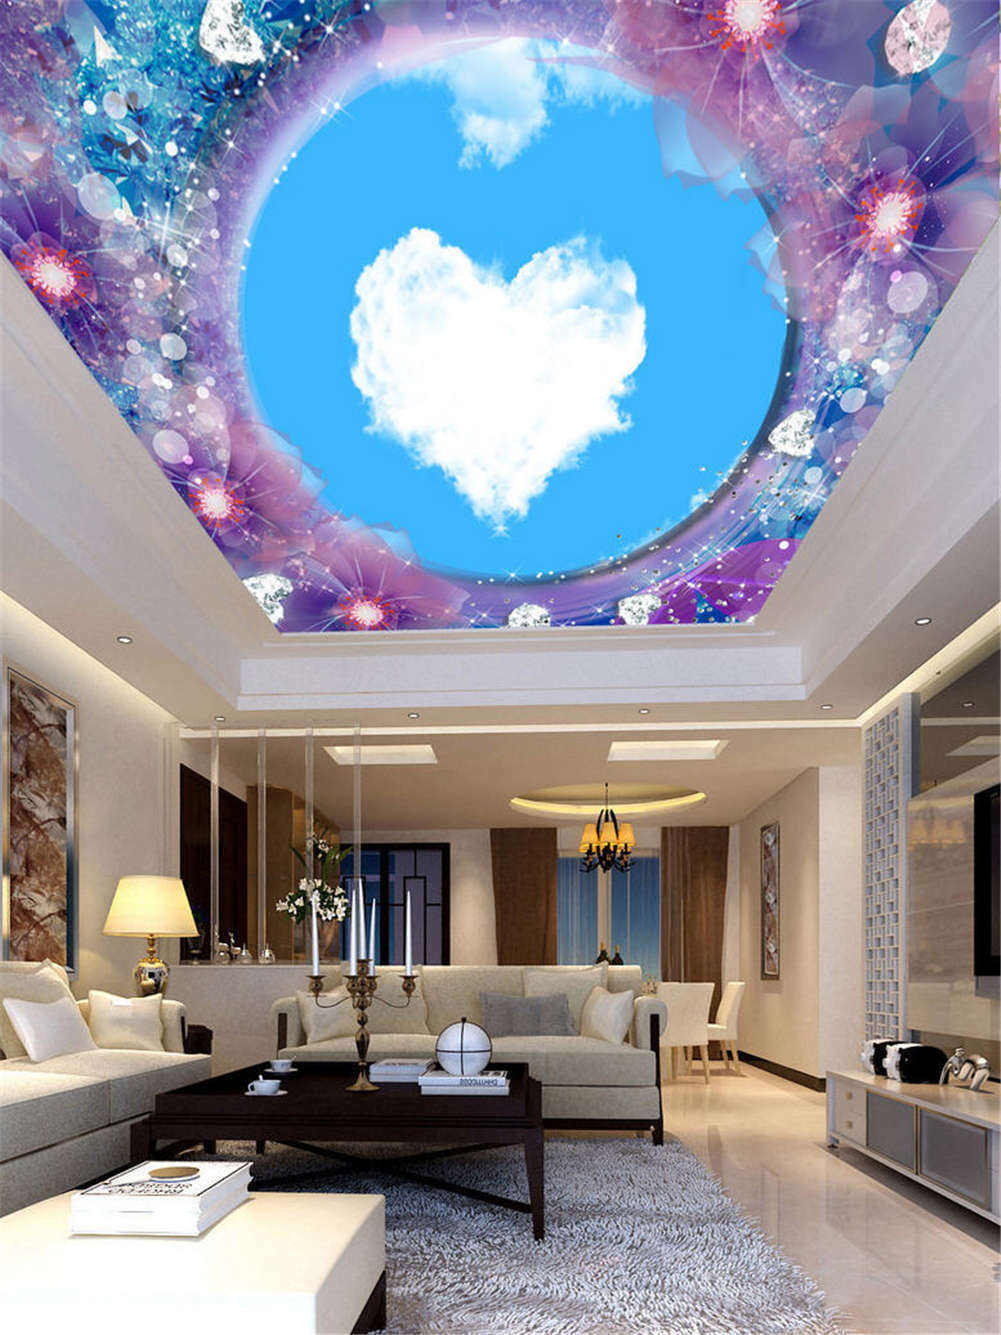 Superior Fade Heart 3D Ceiling Mural Full Wall Photo Wallpaper Print Home Decor